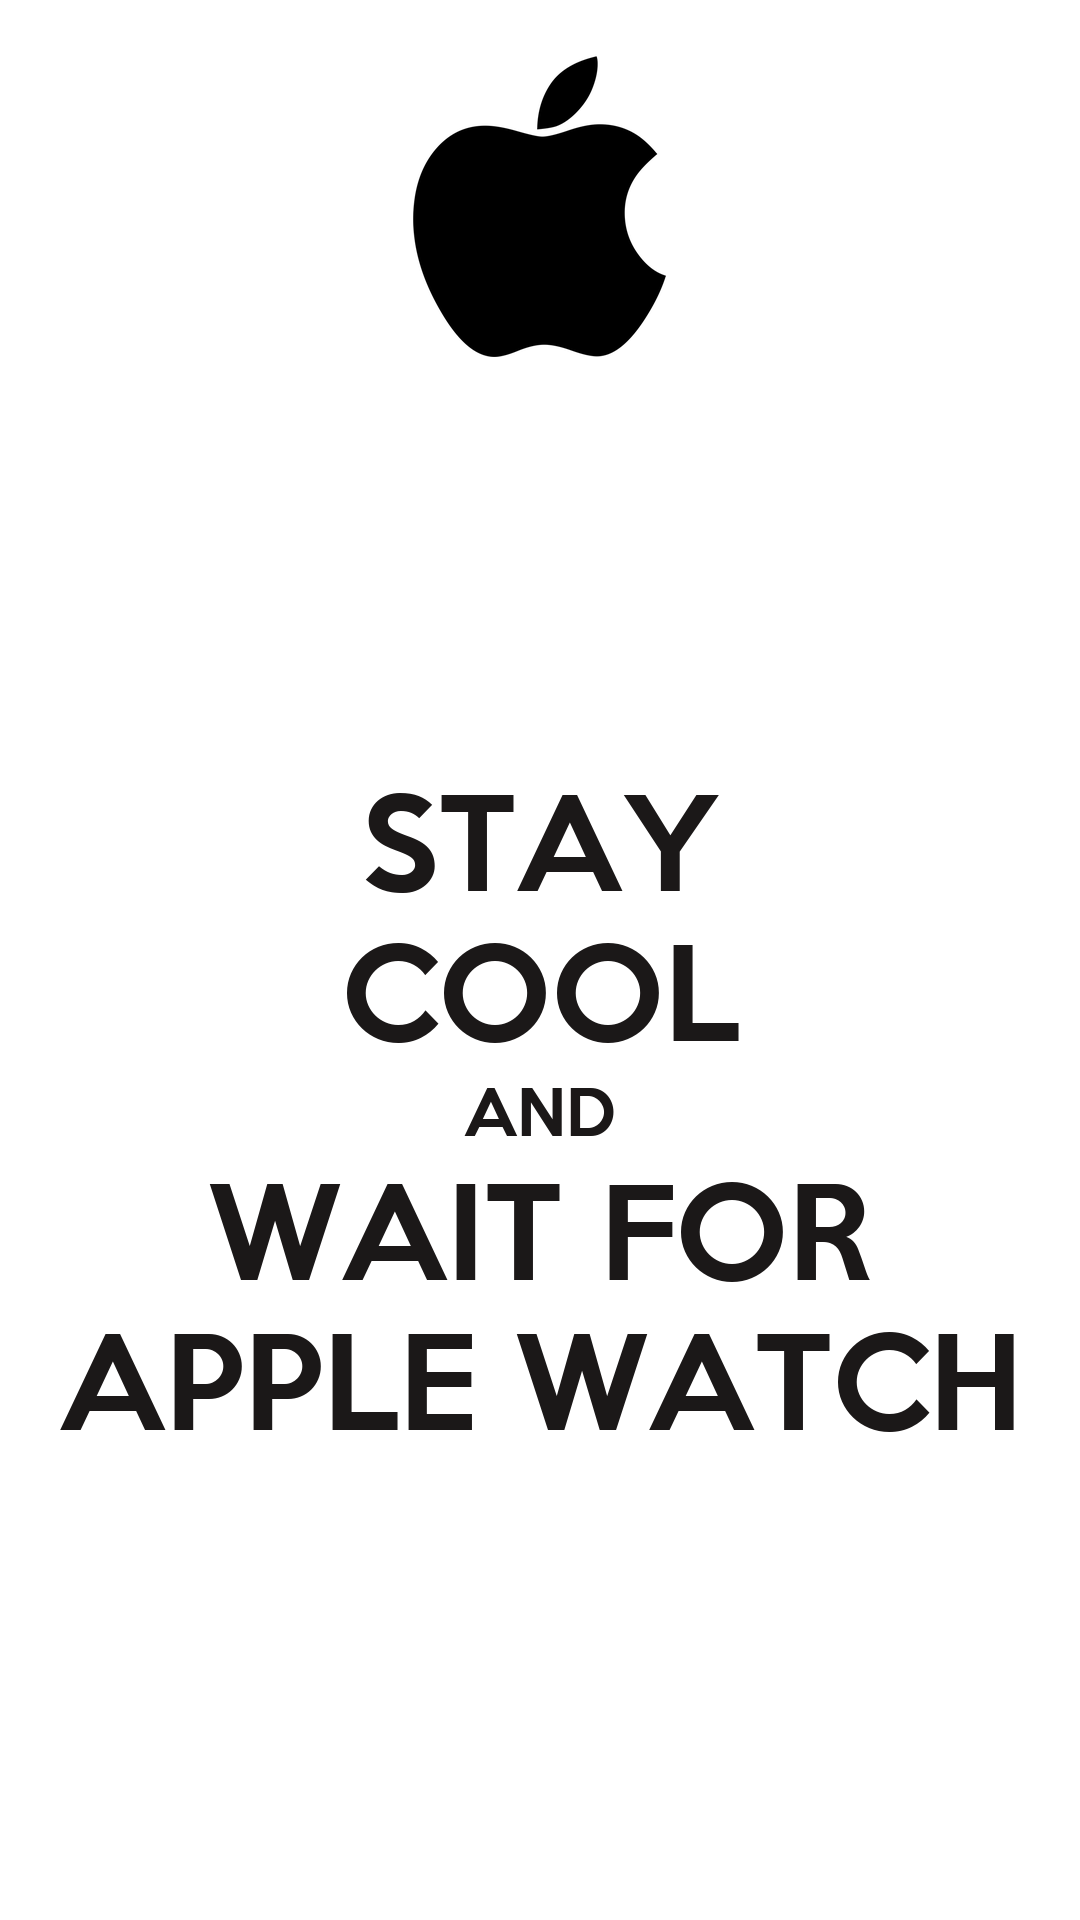 Apple Watch Poster And Wait For Apple Watch